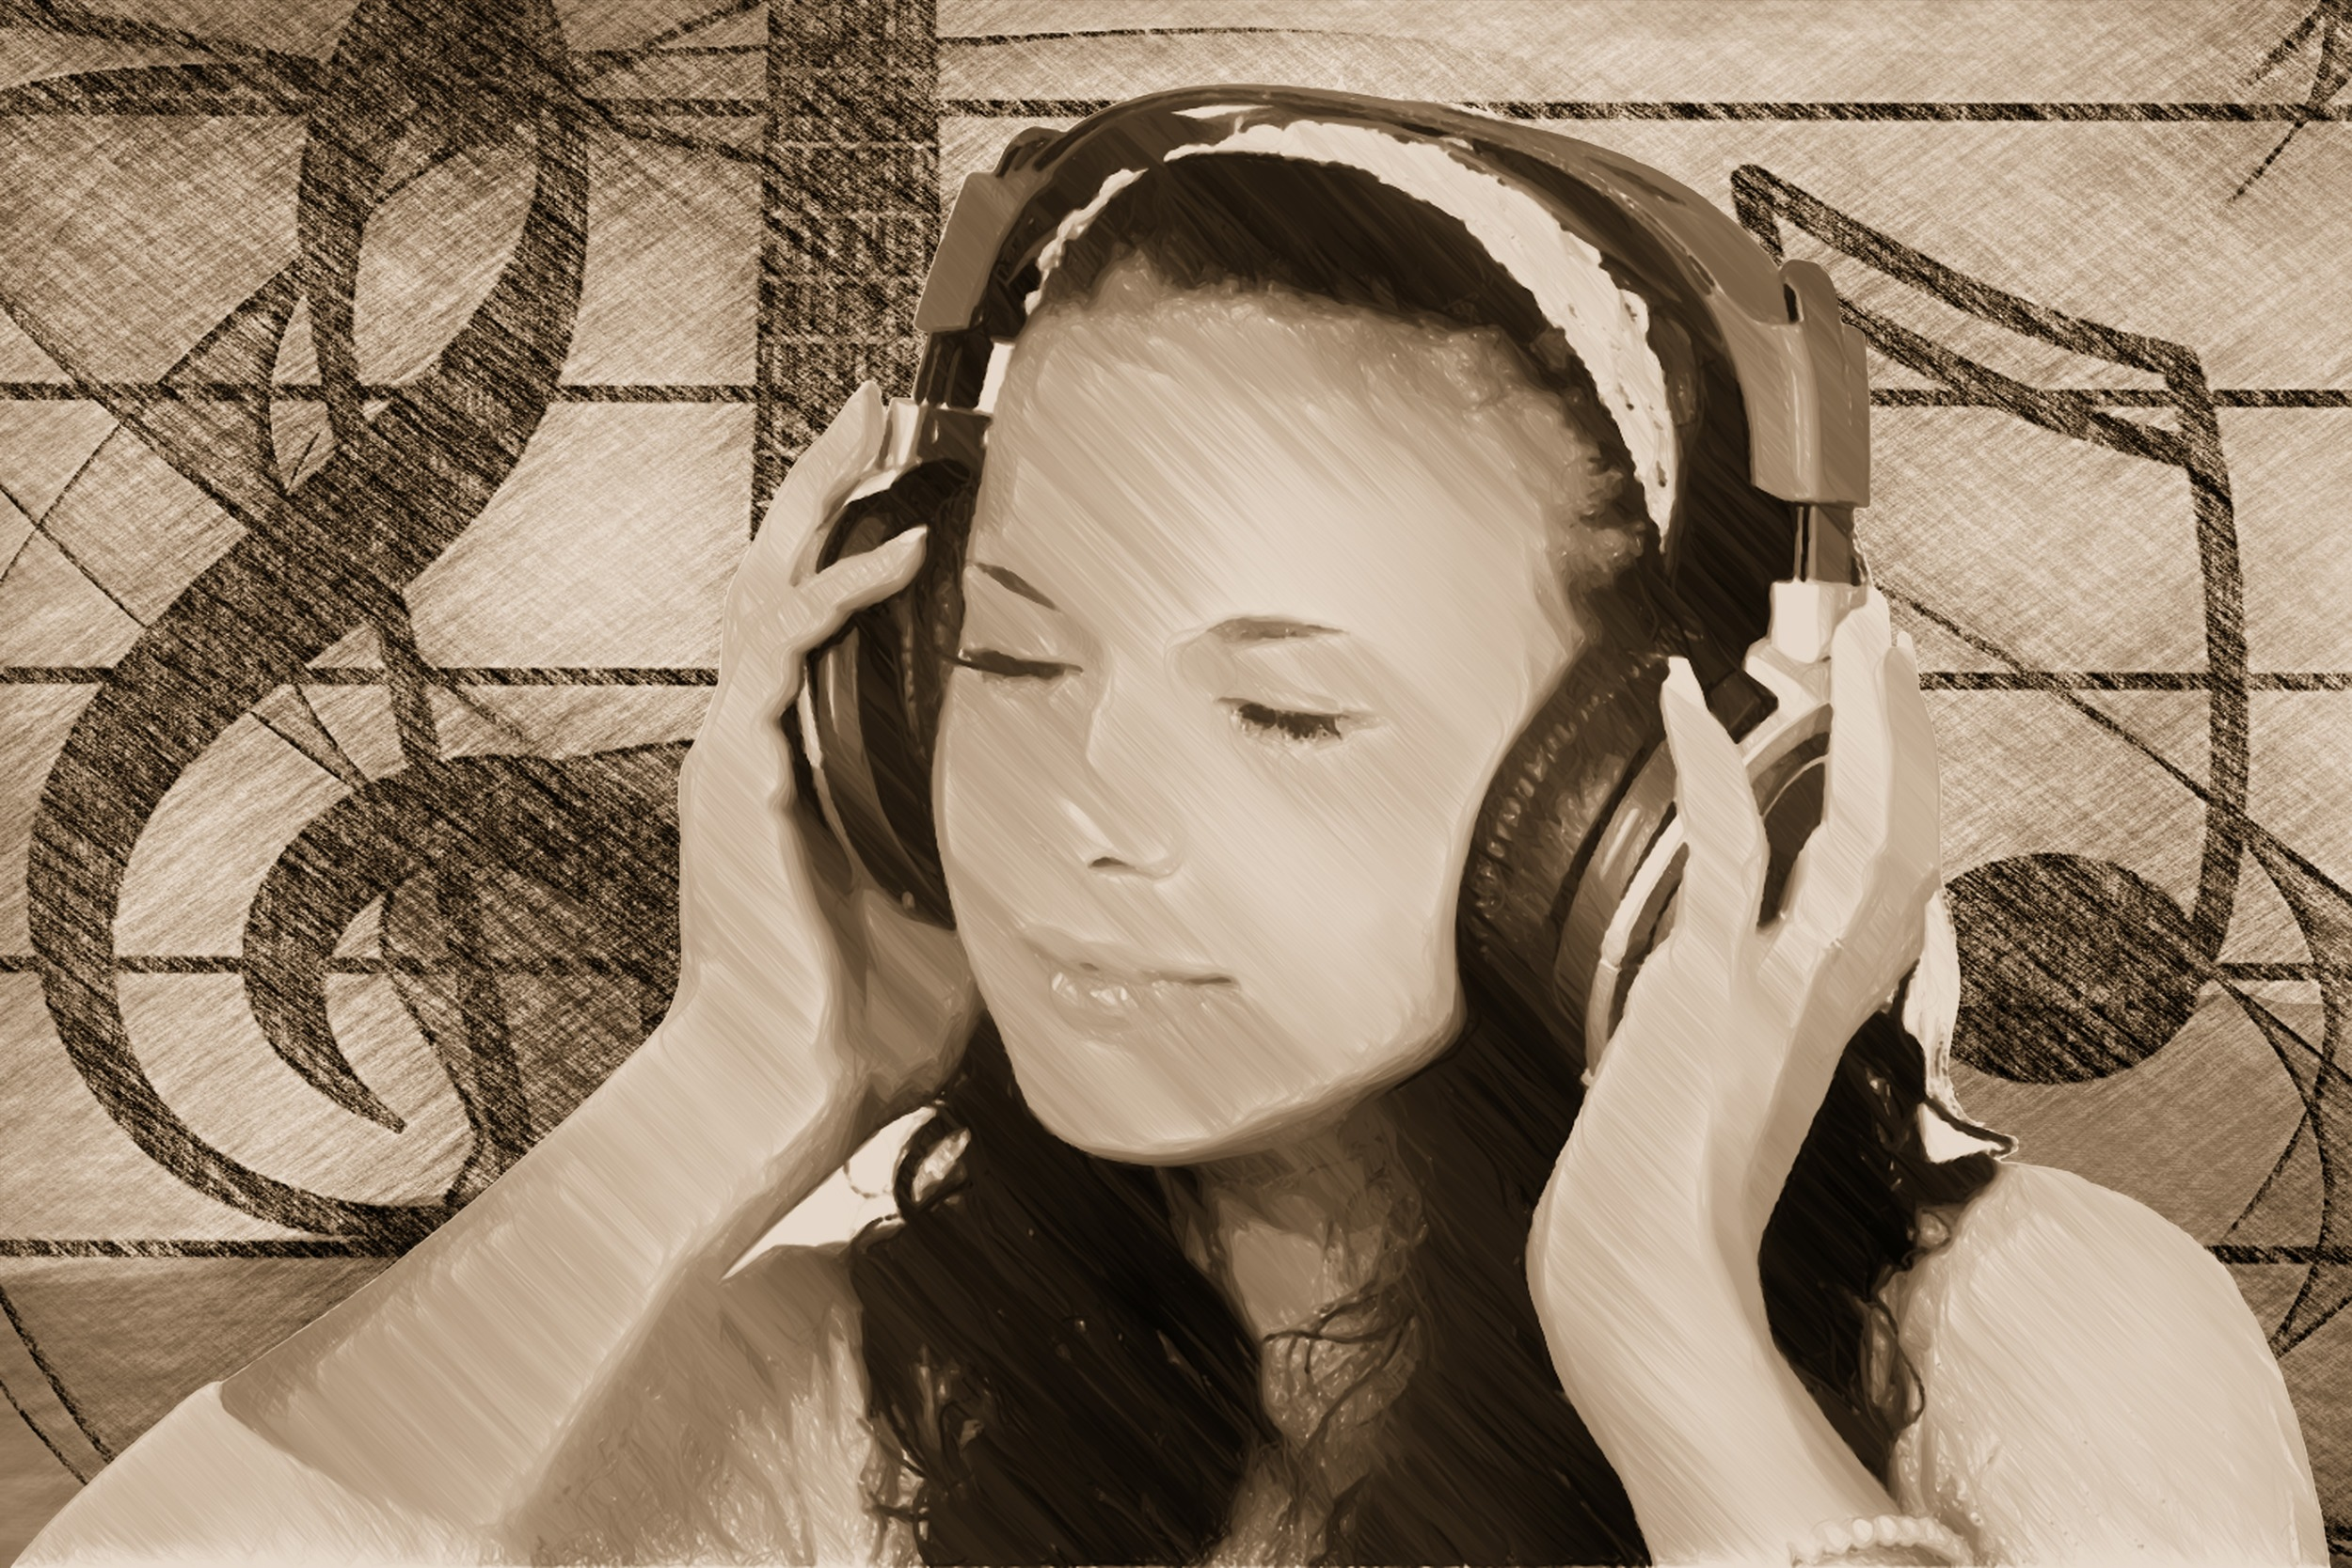 girl listening to music on headphones.jpg